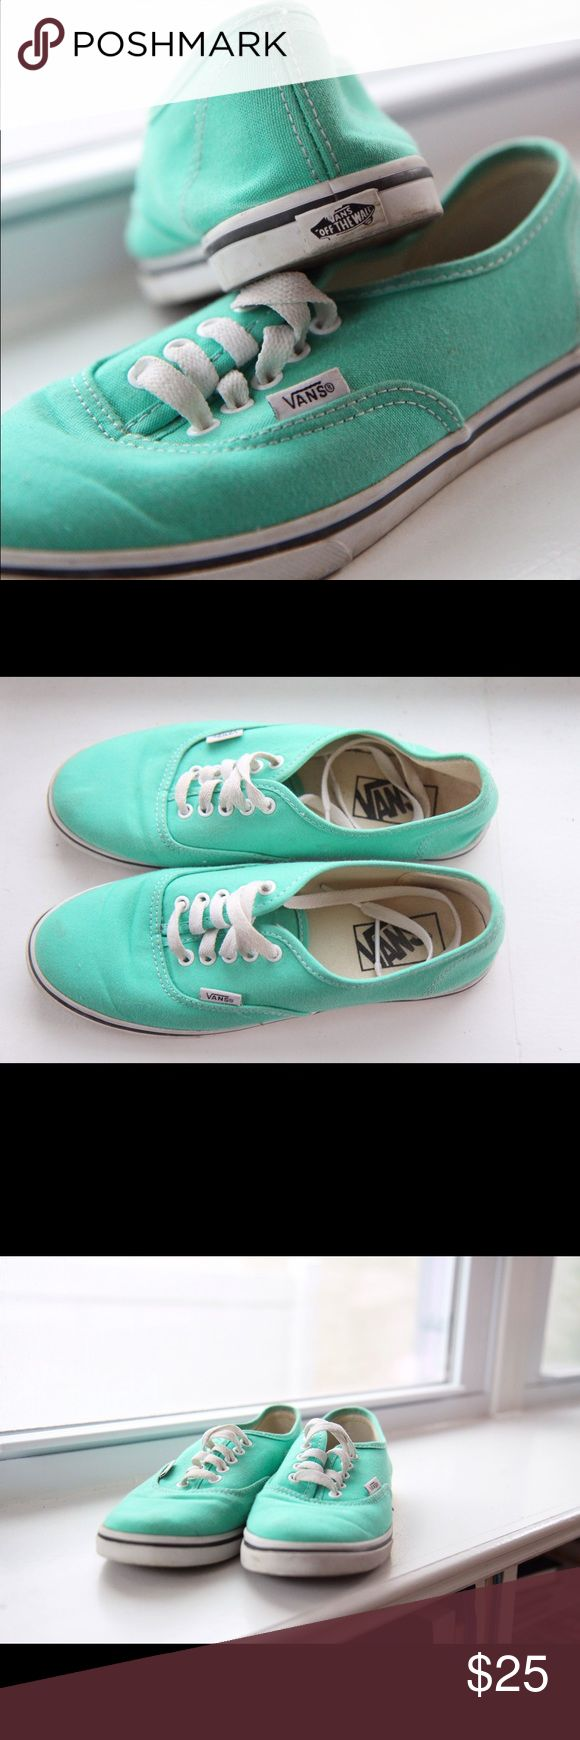 Teal Vans Authentic Shoe Low top, lace-up Vans shoes. Tealish size 7 women's. Vans Shoes Sneakers